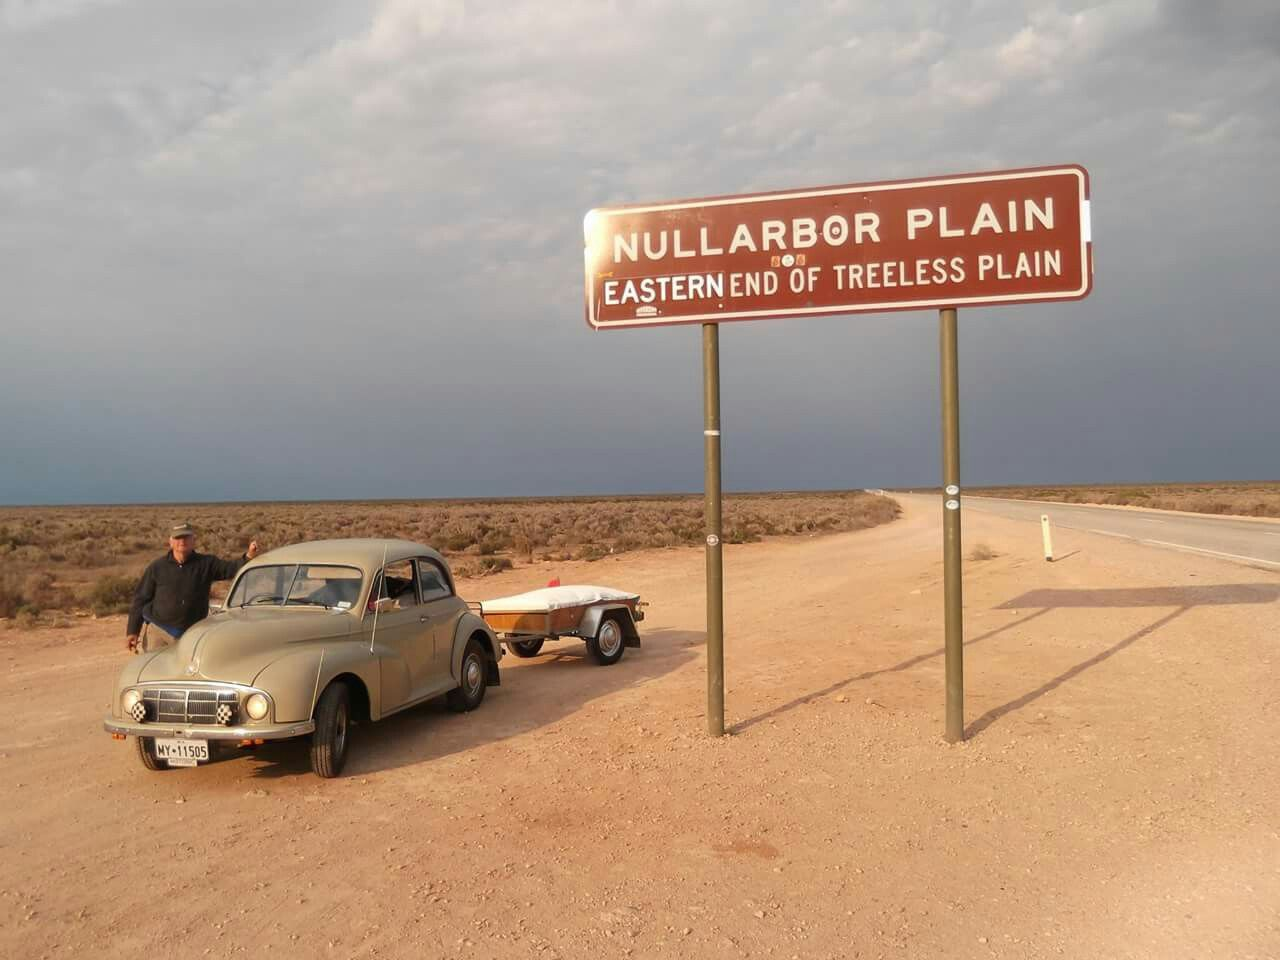 Les Simpson in his mighty Morris 1000 crossing the Nullarbor.